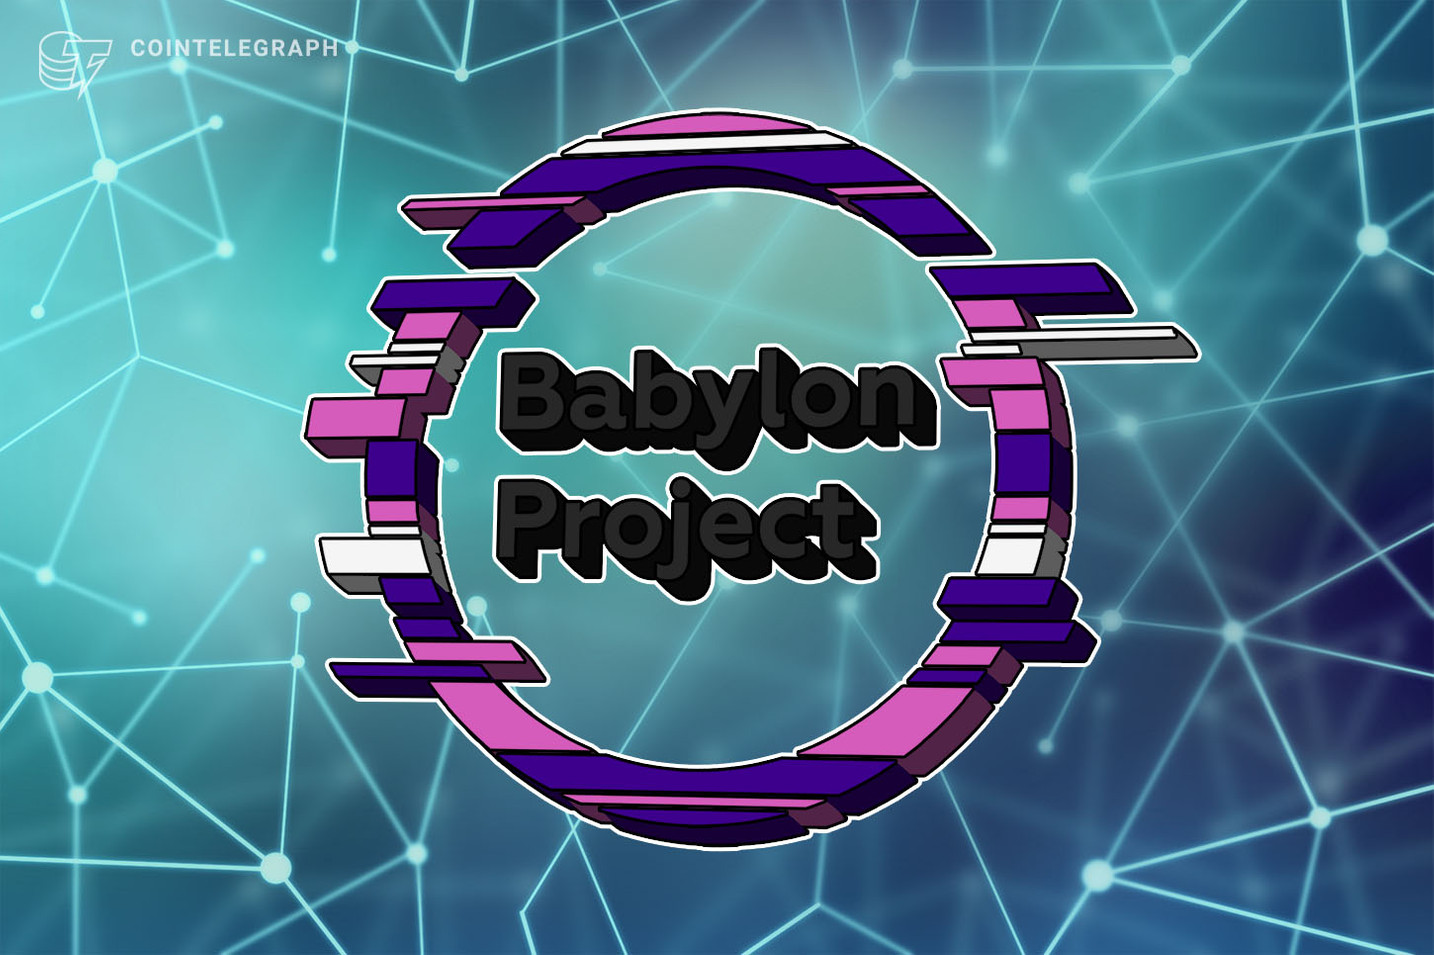 The Babylon Project concludes with developers from 65 countries